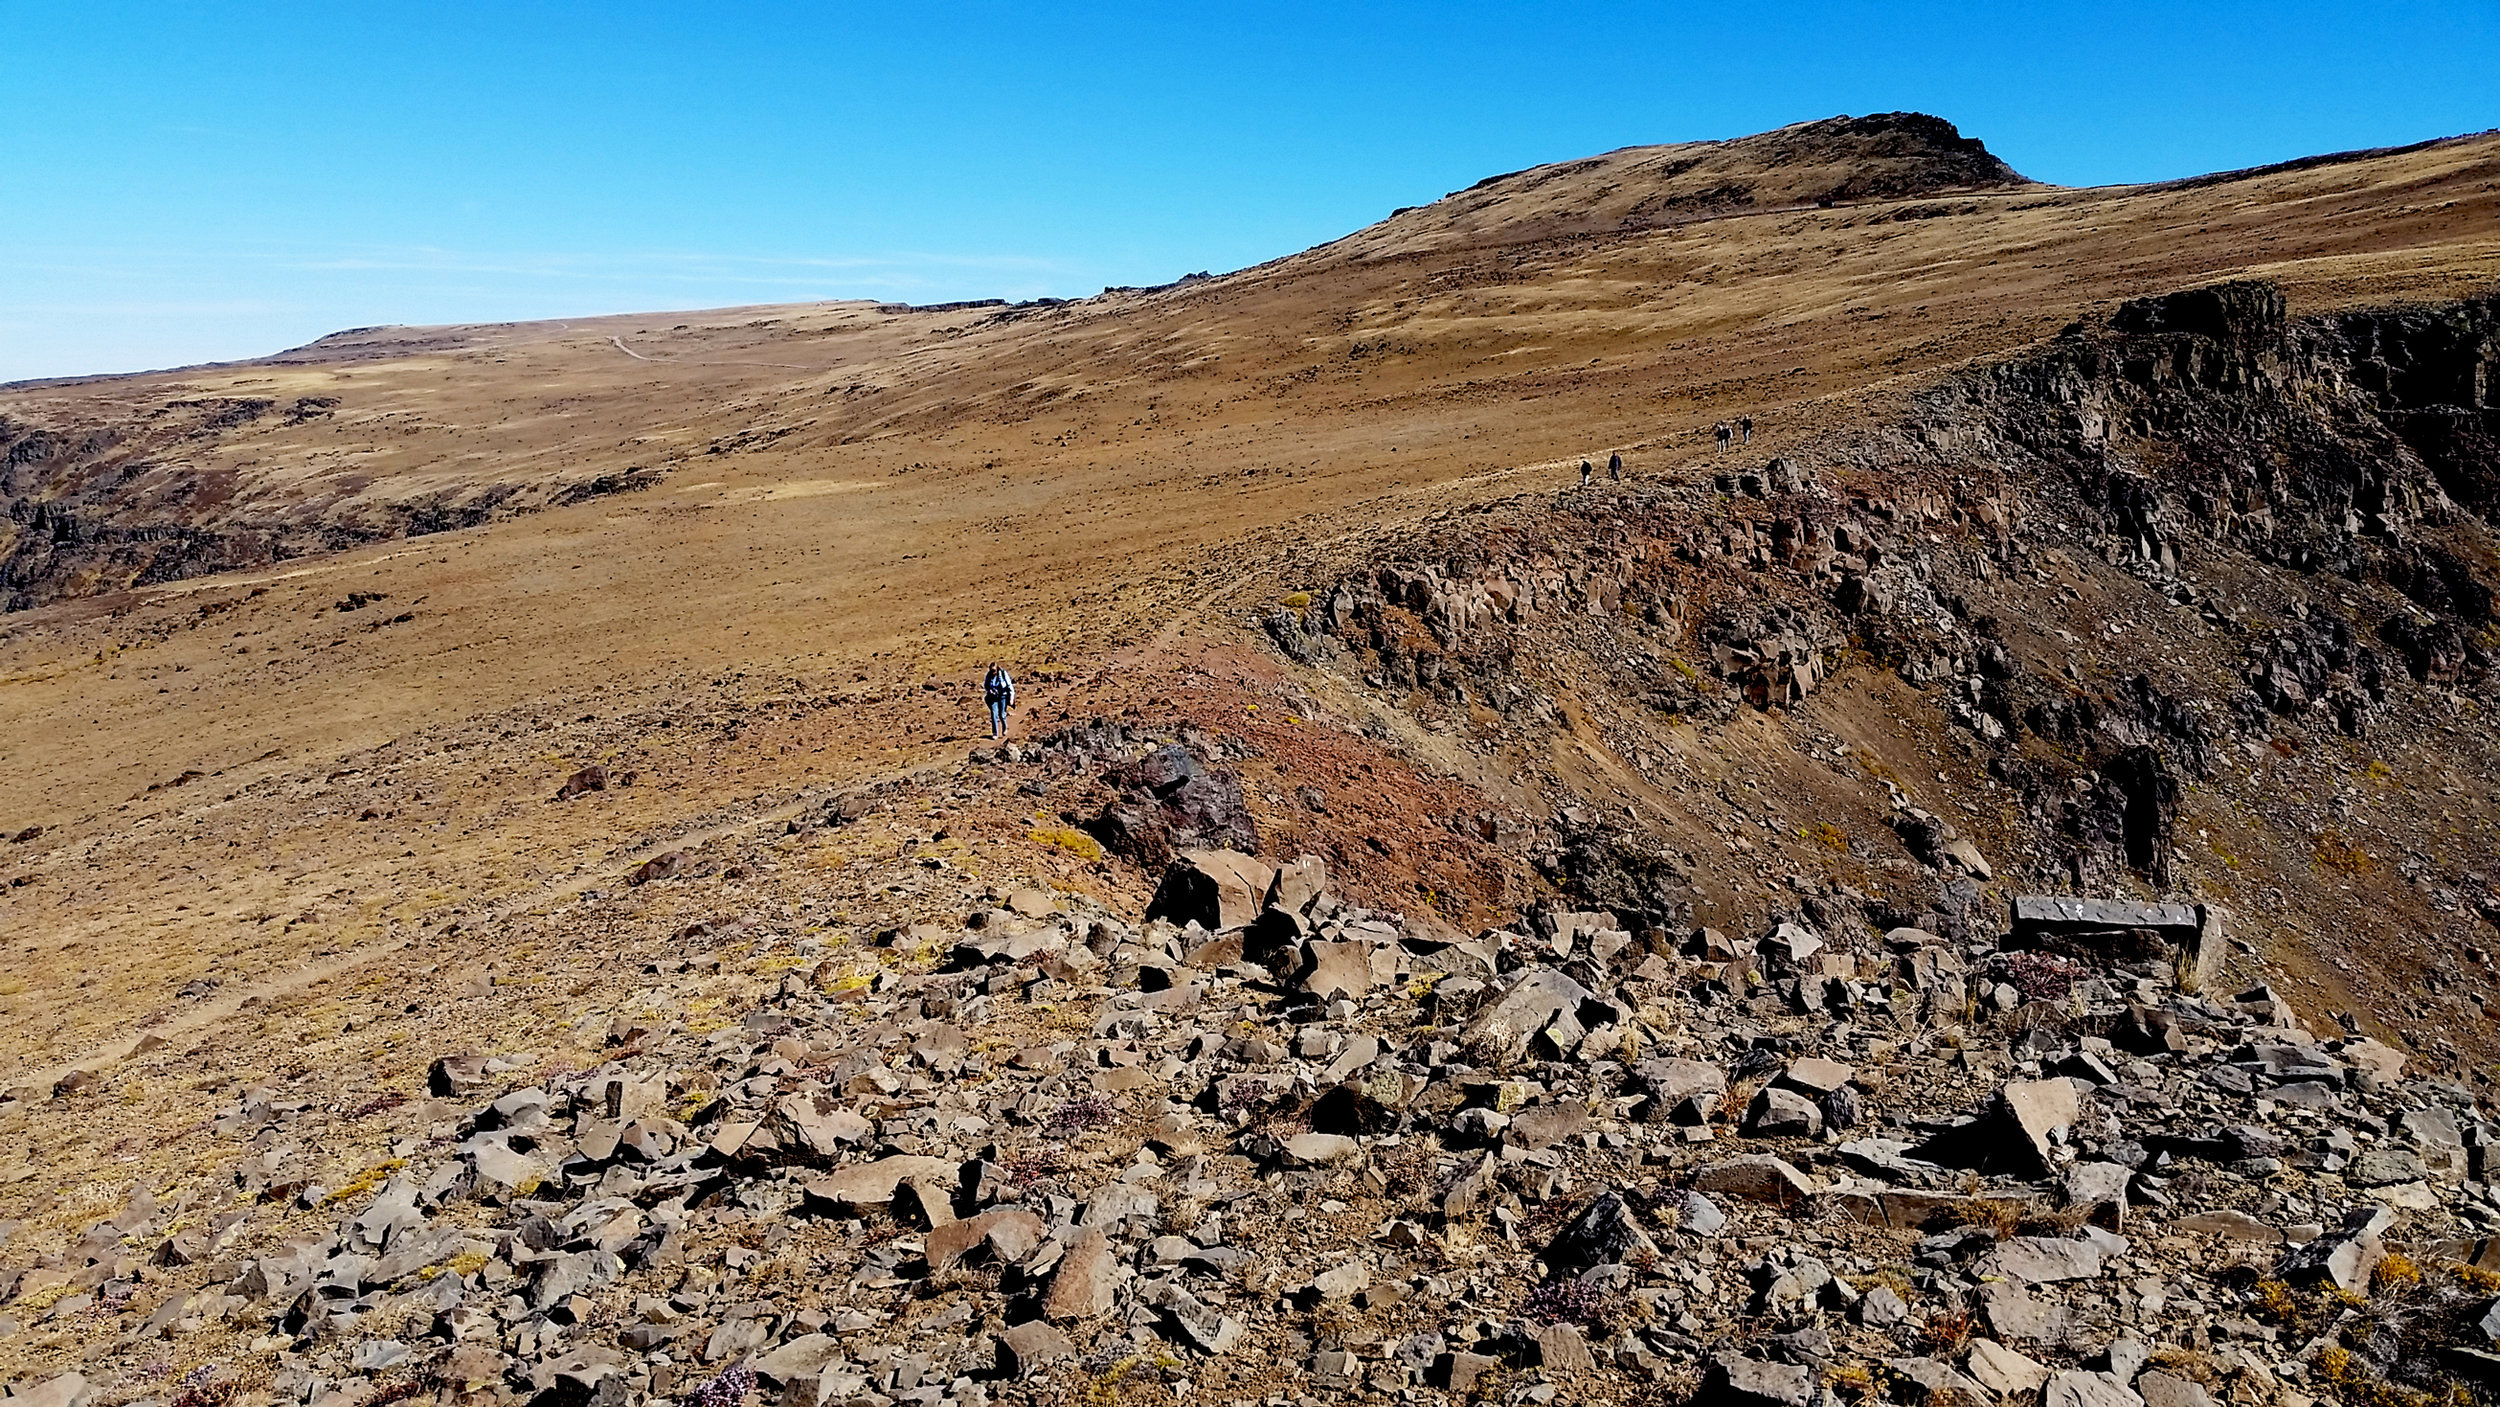 The group hiking along a portion of Steens Mountain